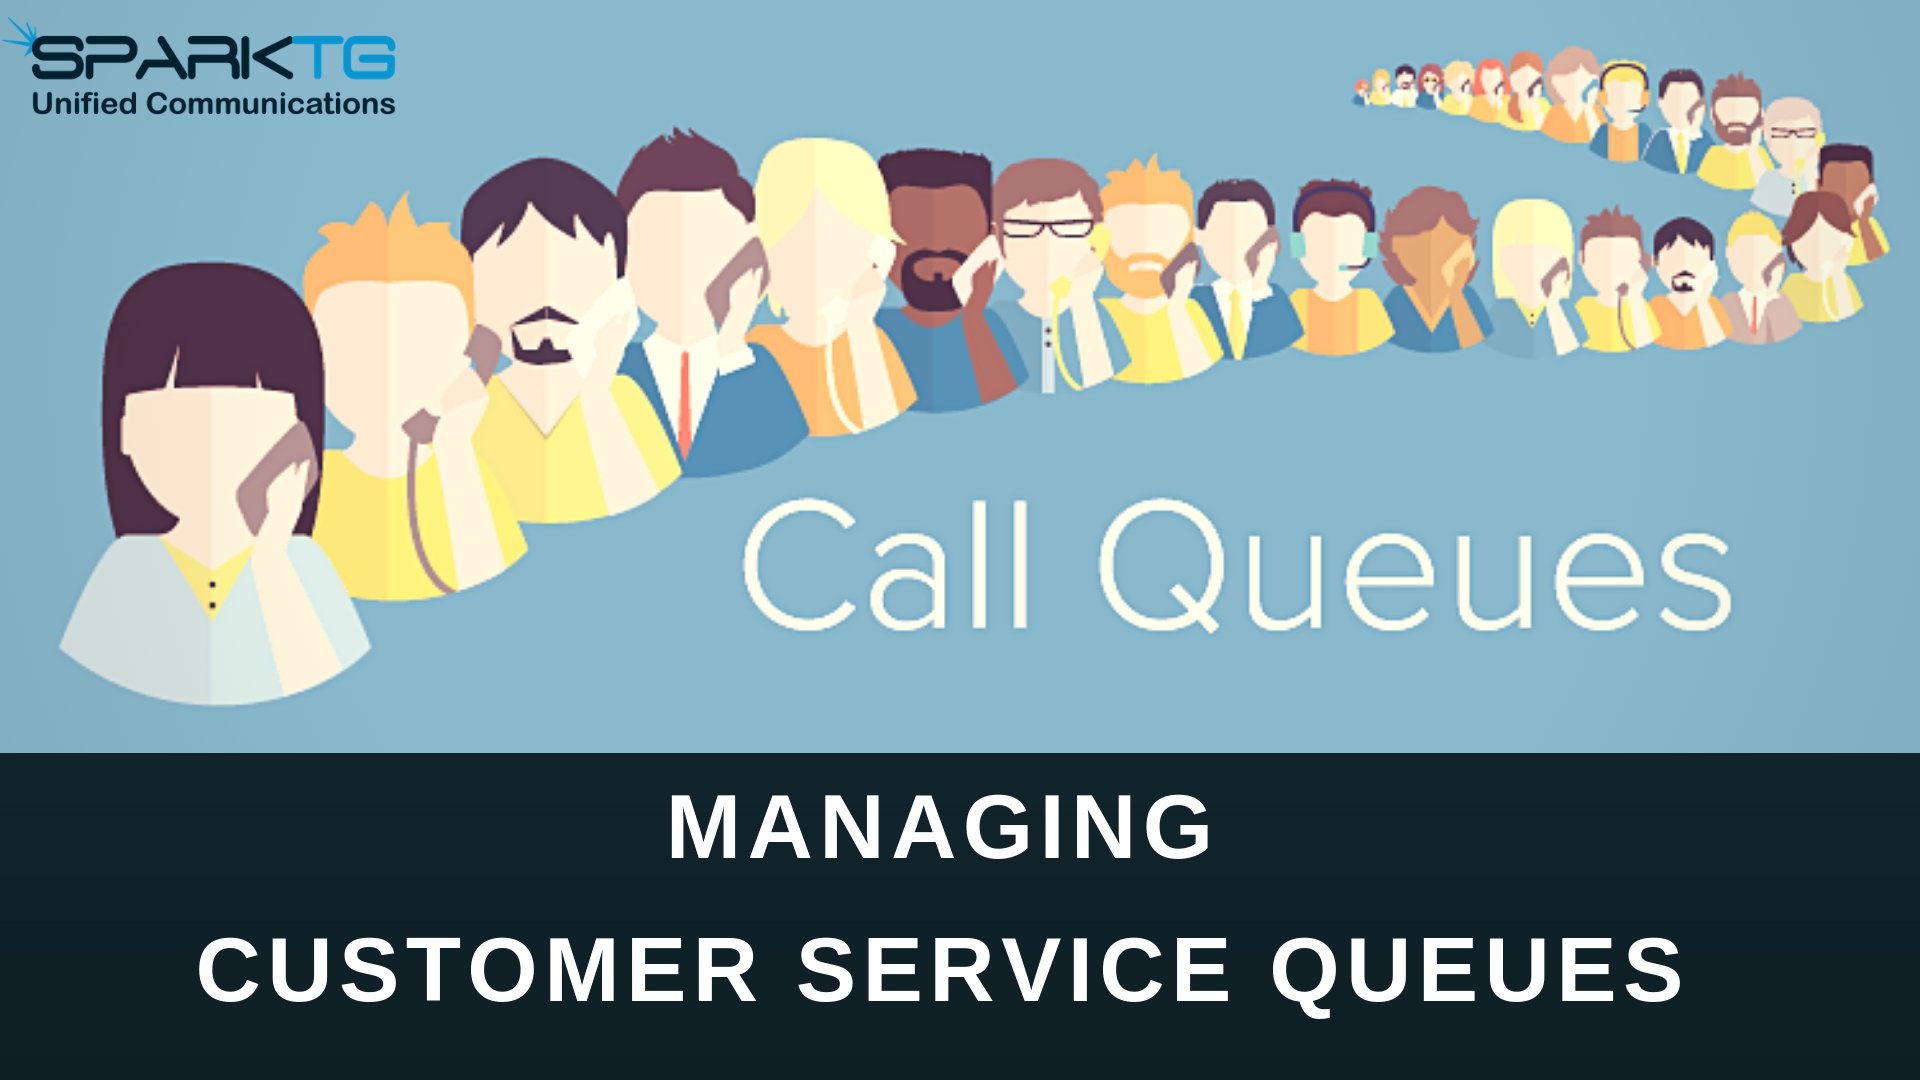 4 Tips for Managing Customer Service Queues